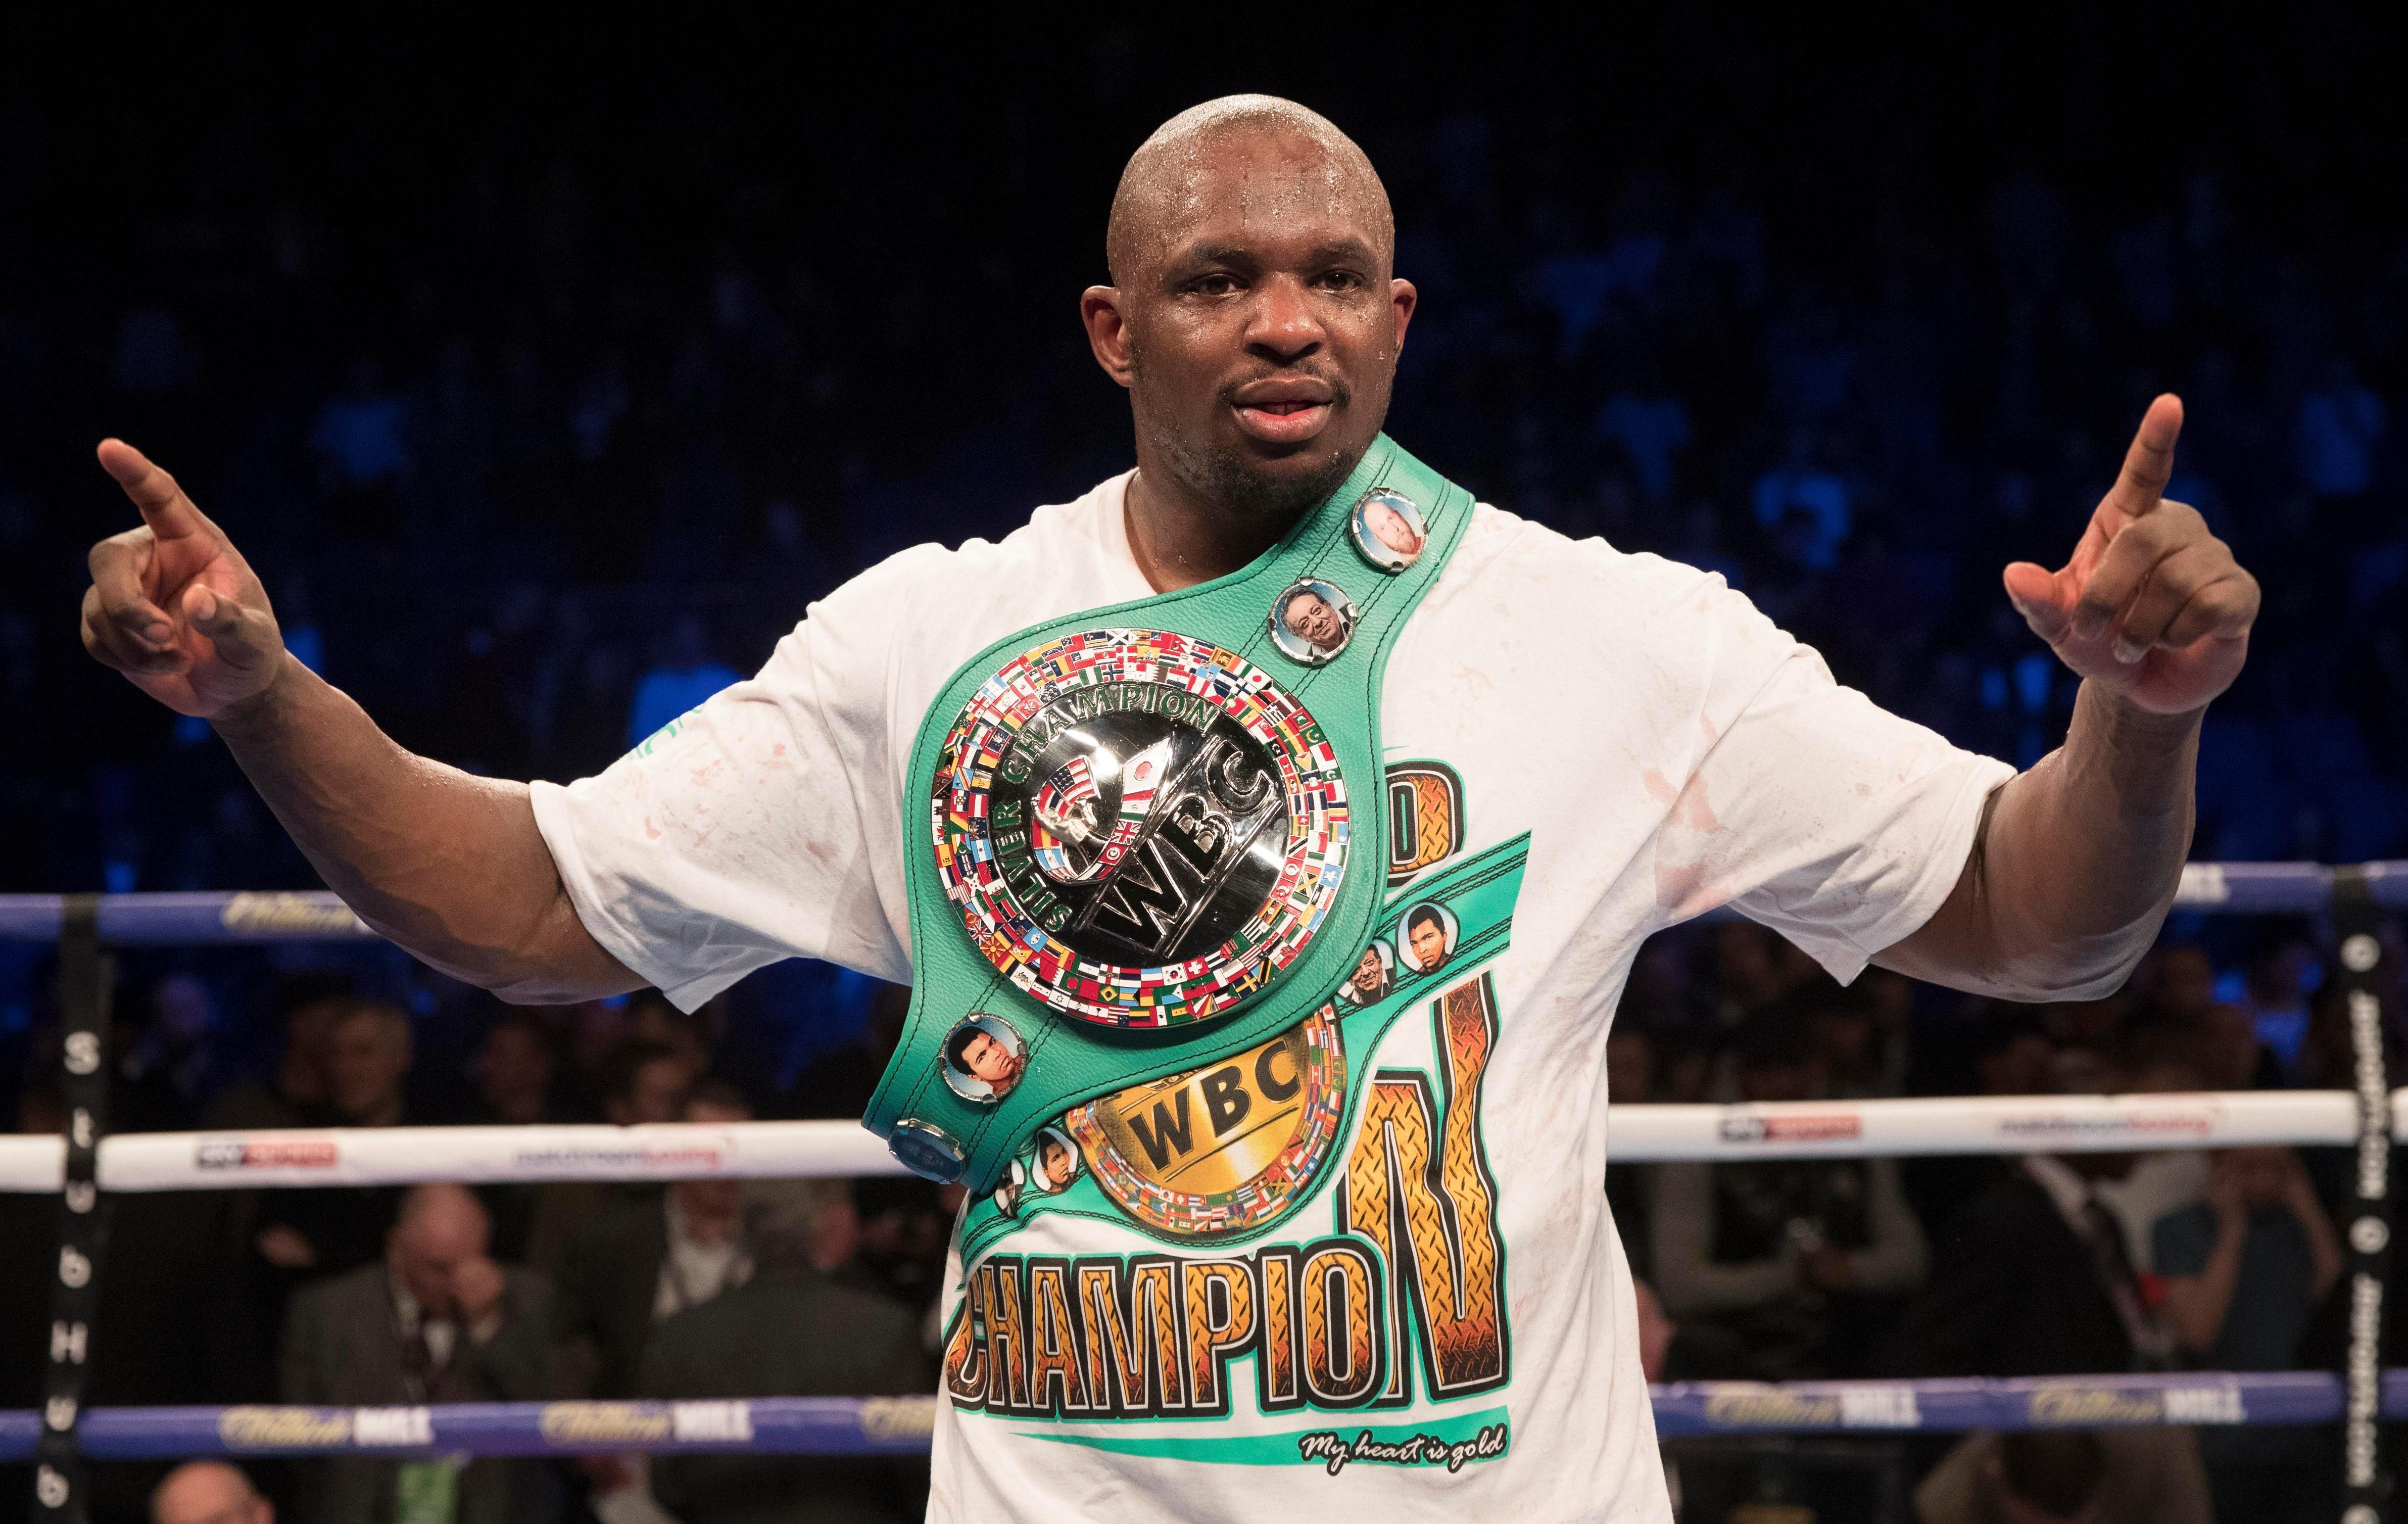 Dillian Whyte appears STILL to be one step off fighting Deontay Wilder for the WBC heavyweight title